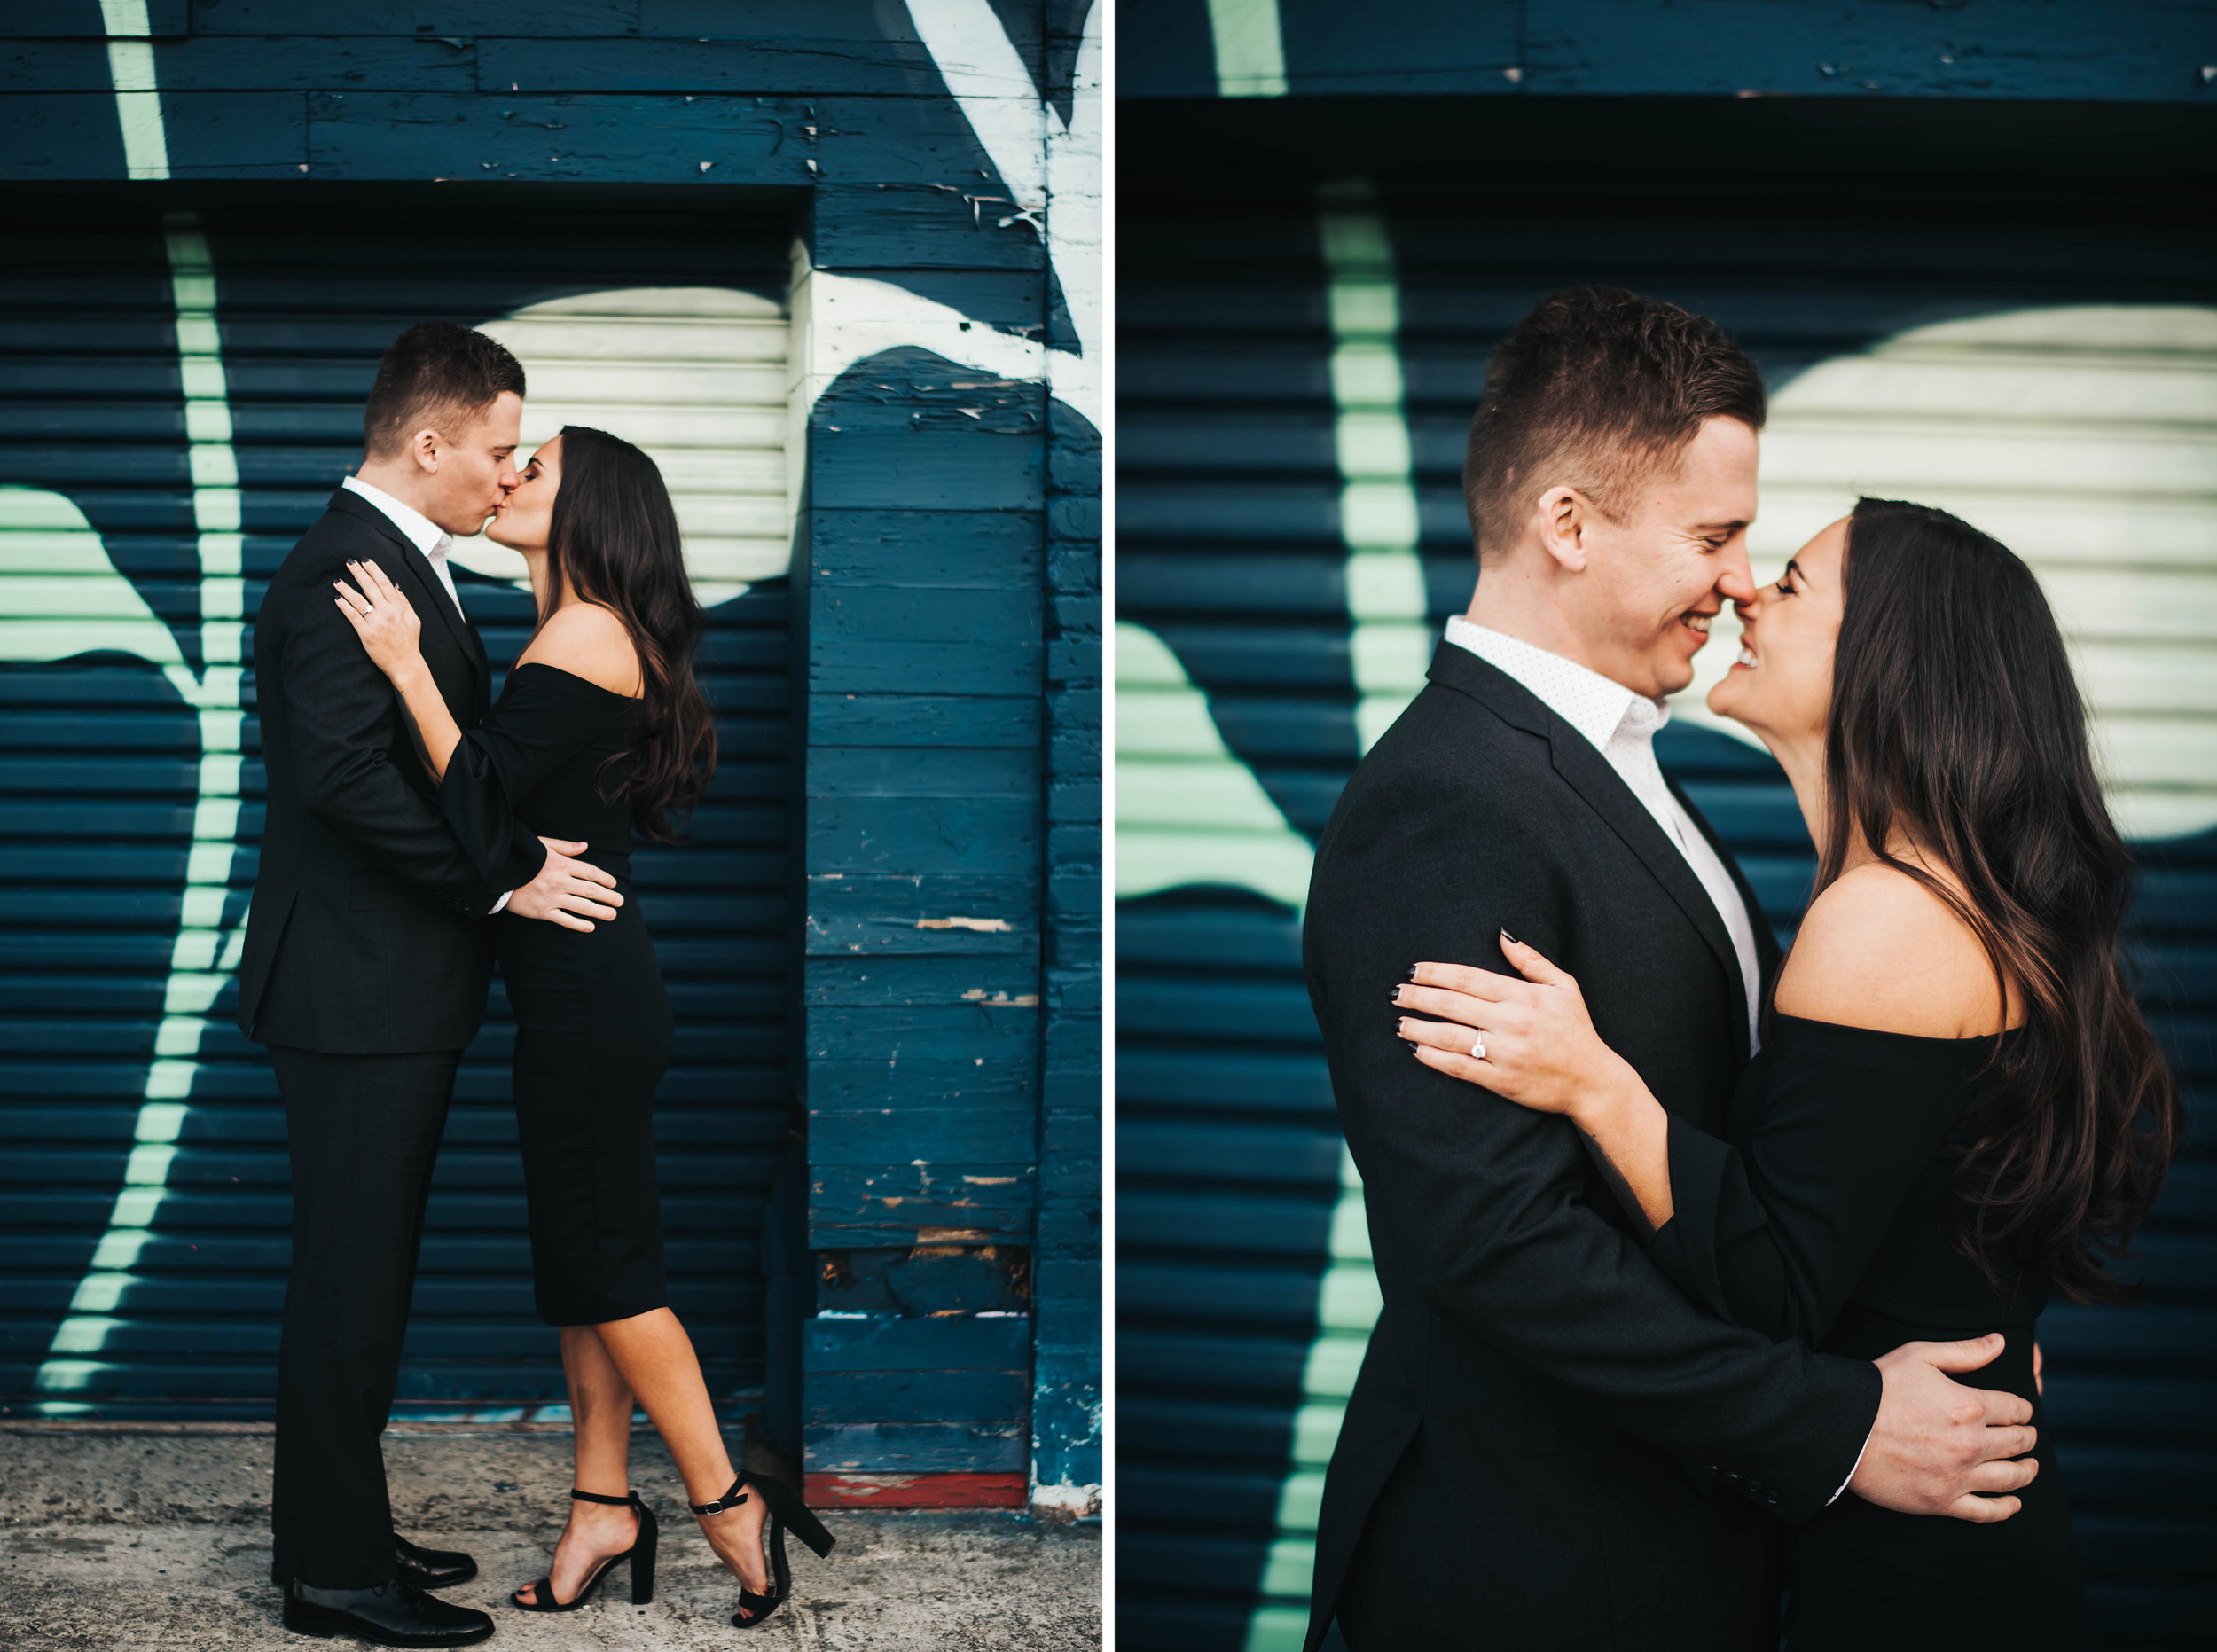 atlanta engagement wedding nontraditional photographer1.jpg